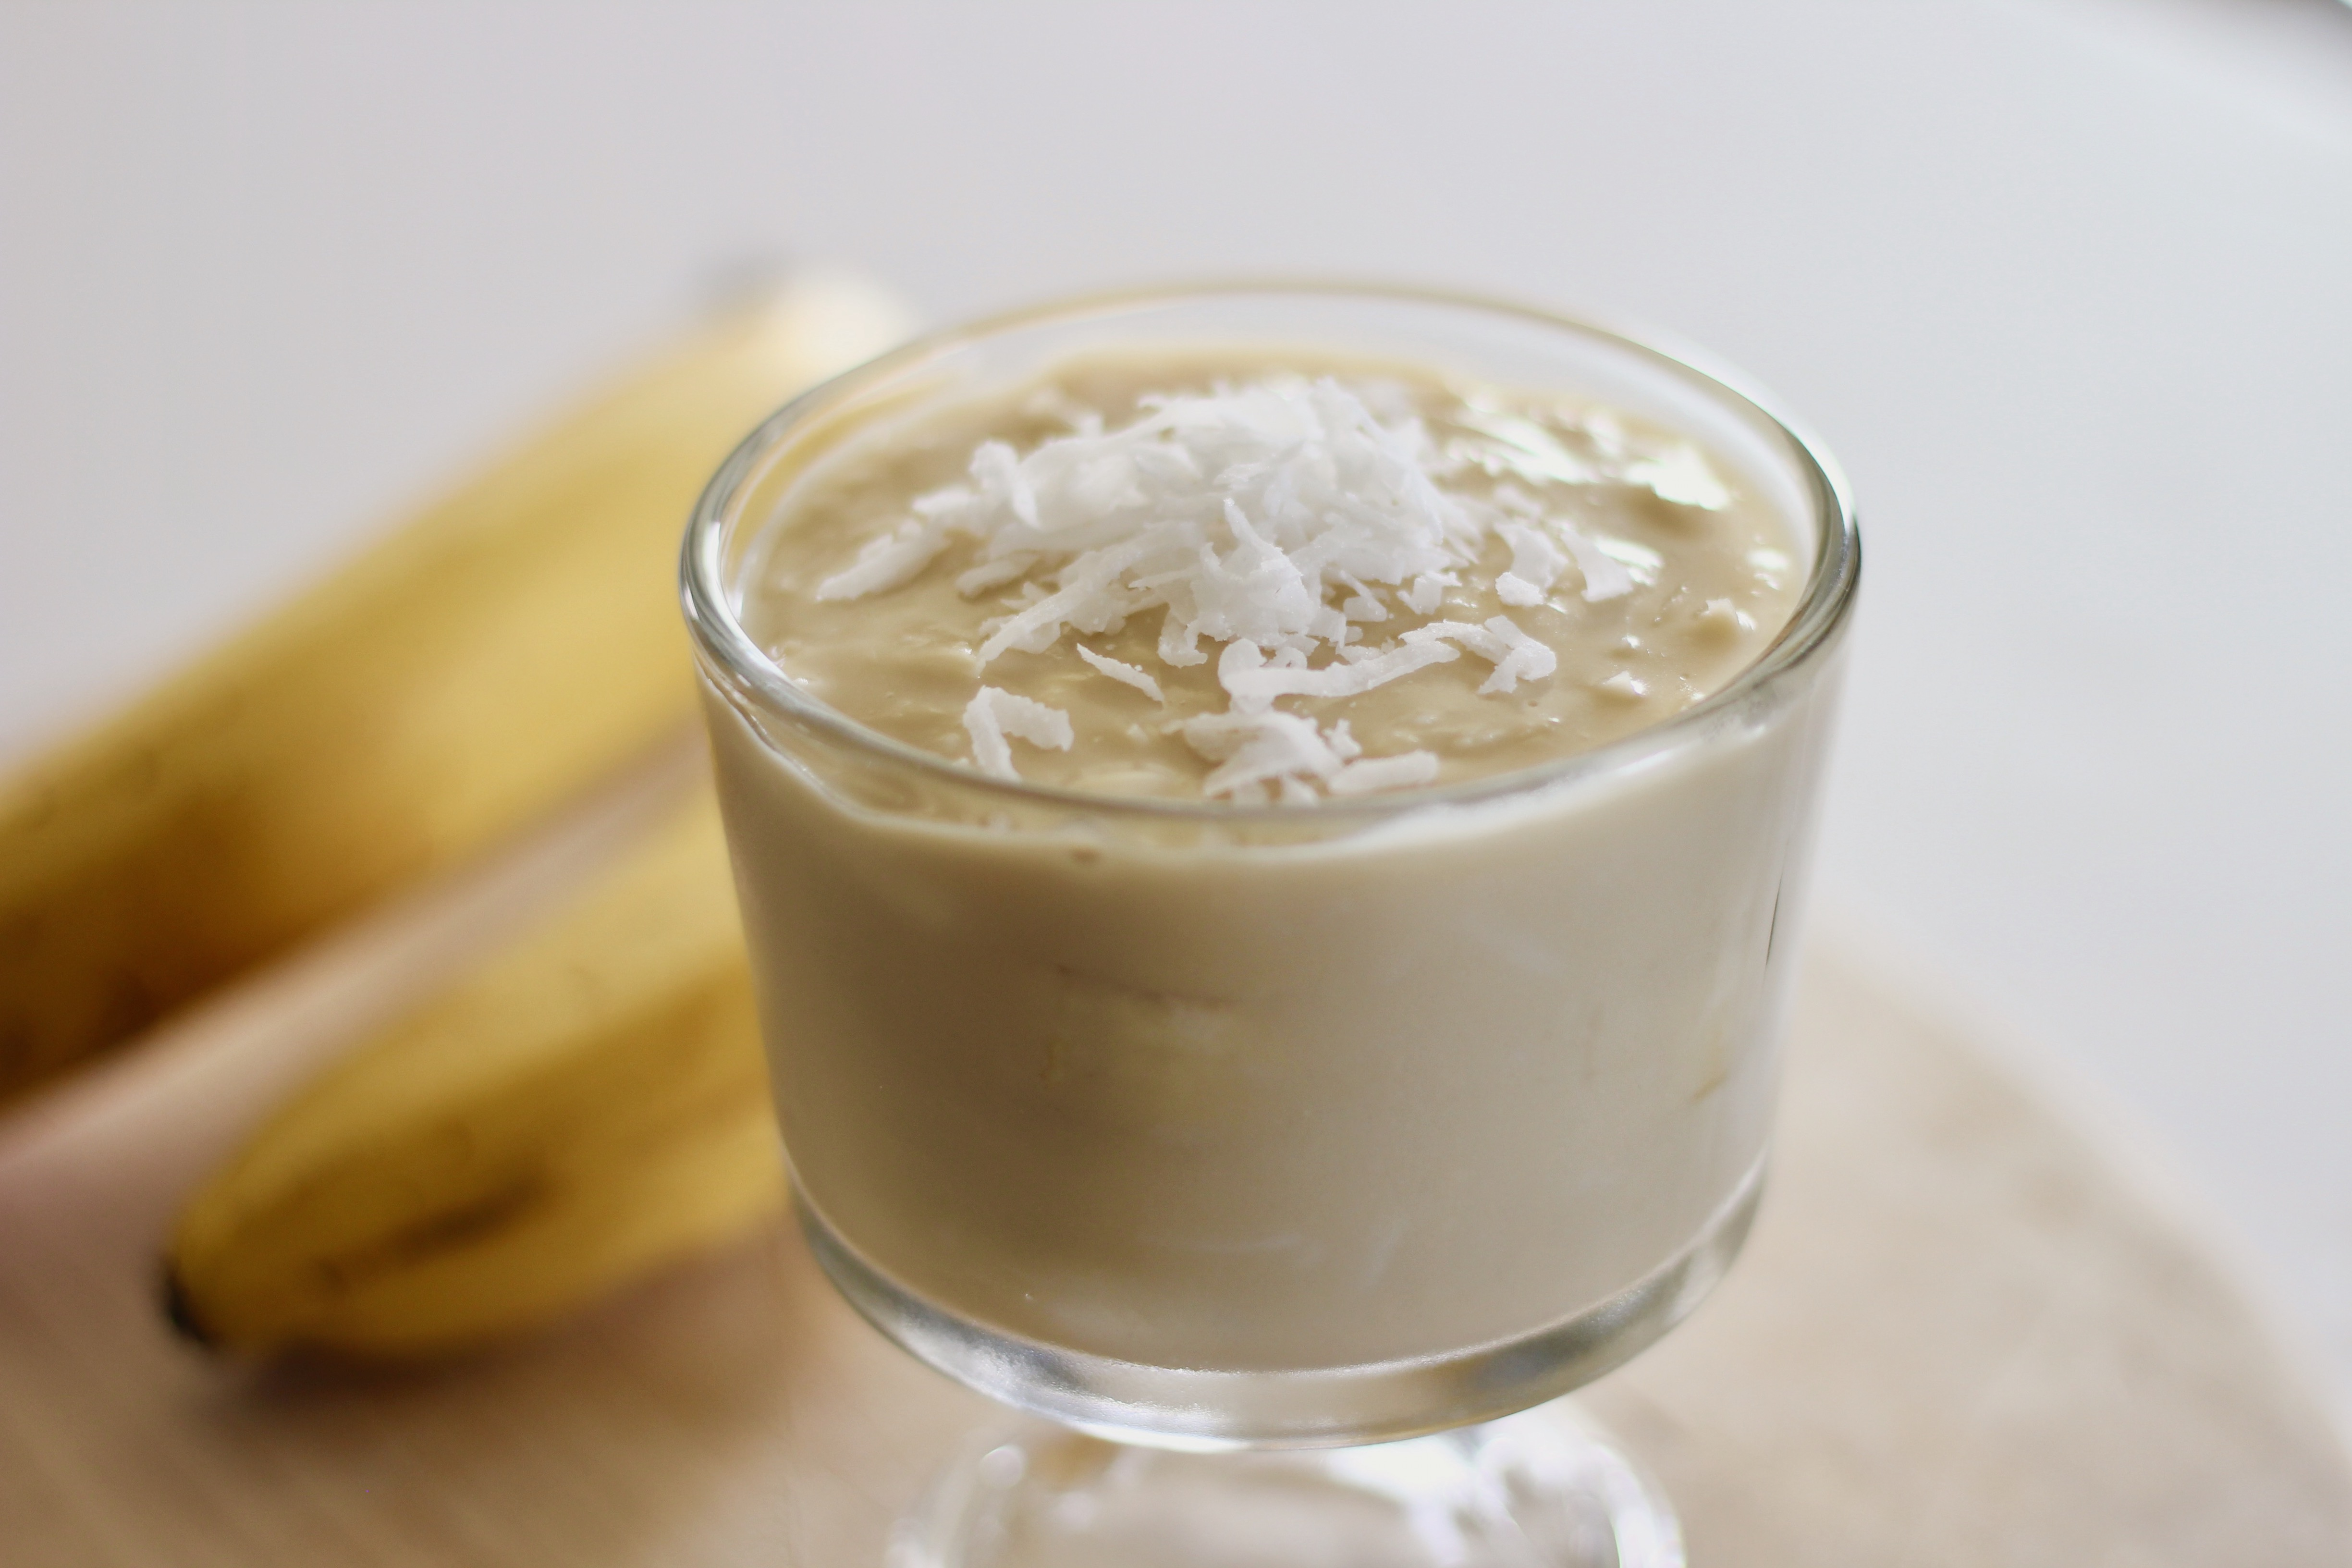 Banana Coconut Pudding or Pie Filling